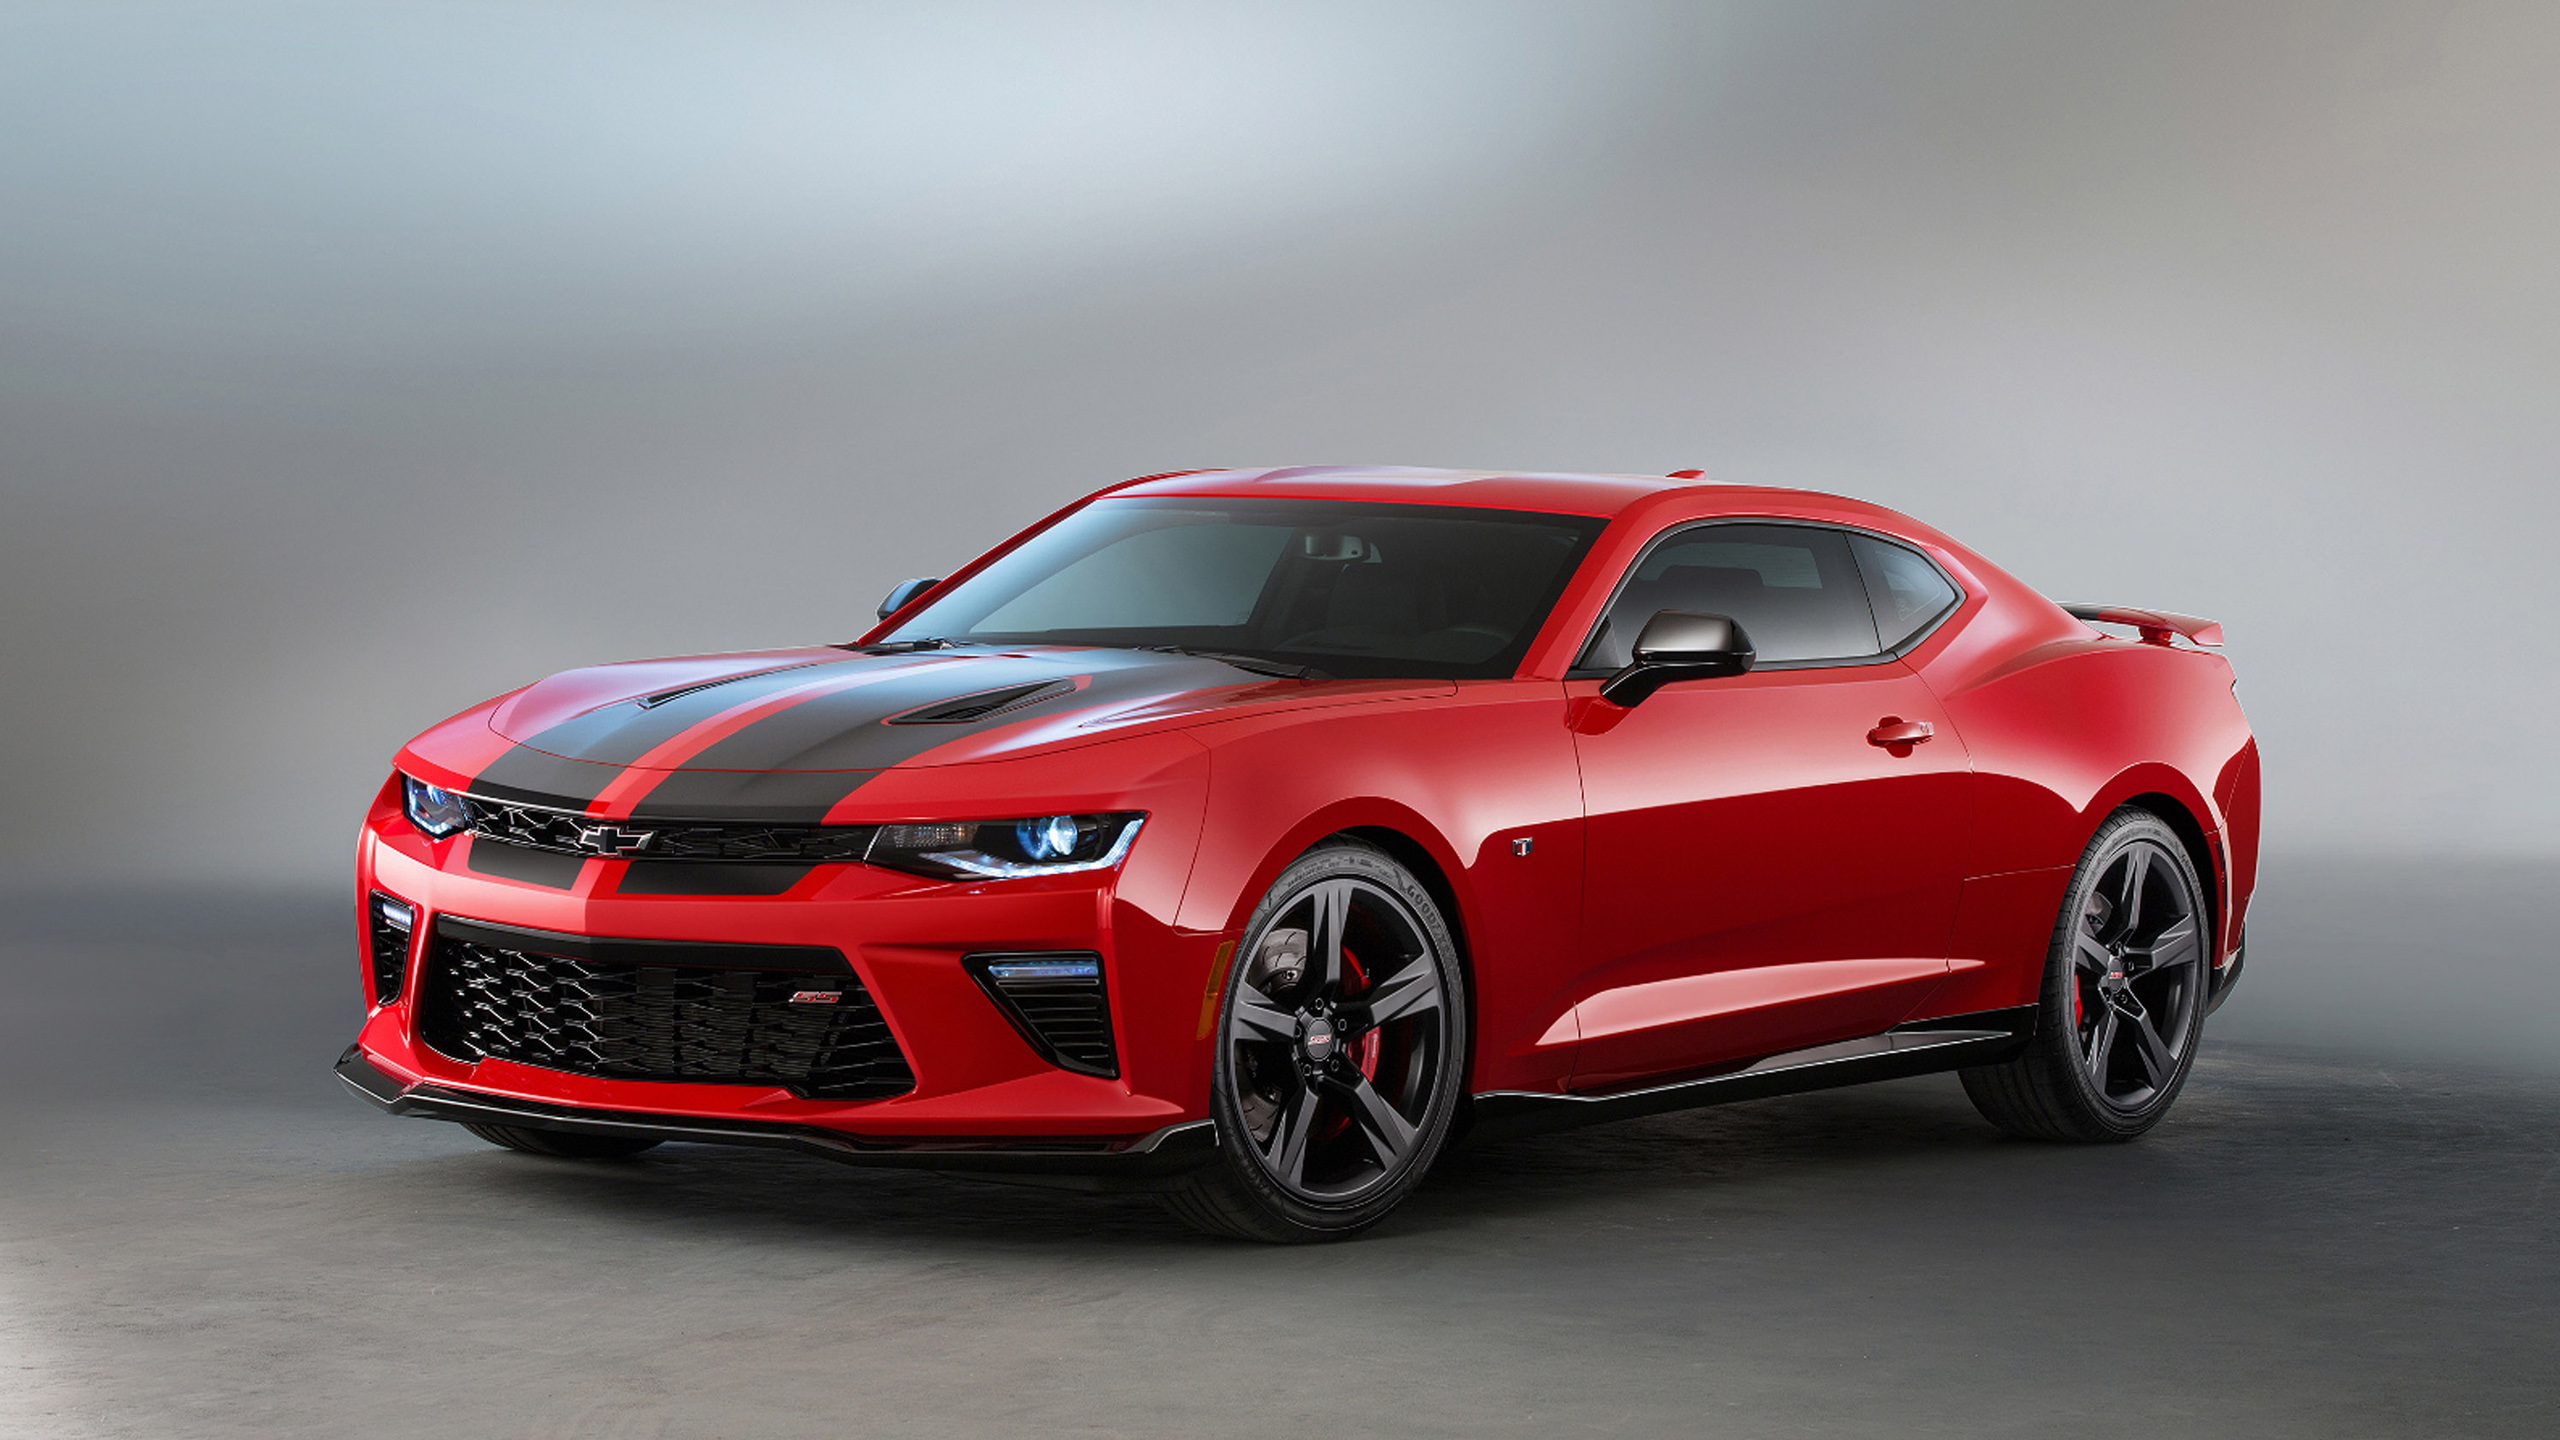 2016 Chevrolet Camaro SS Black Accent Package Wallpaper HD Car 2560x1440